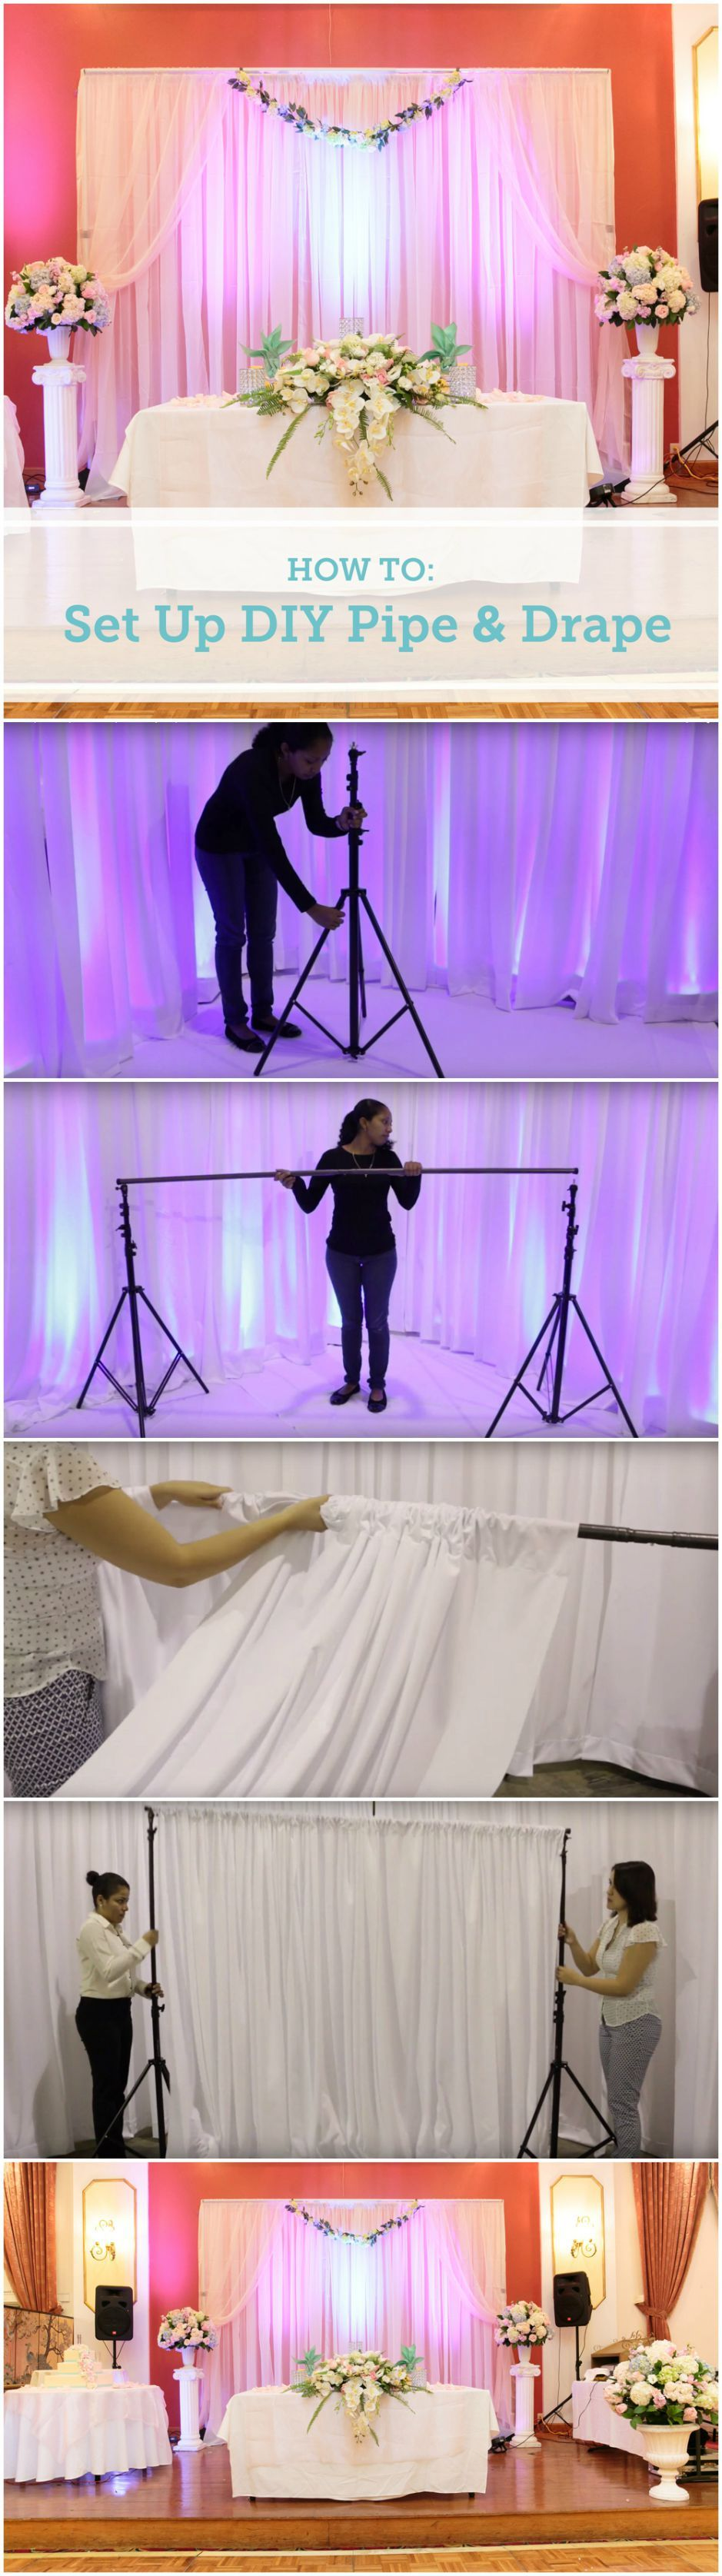 How To Set Up a DIY Wedding Backdrop Diy pipe, Pipes and